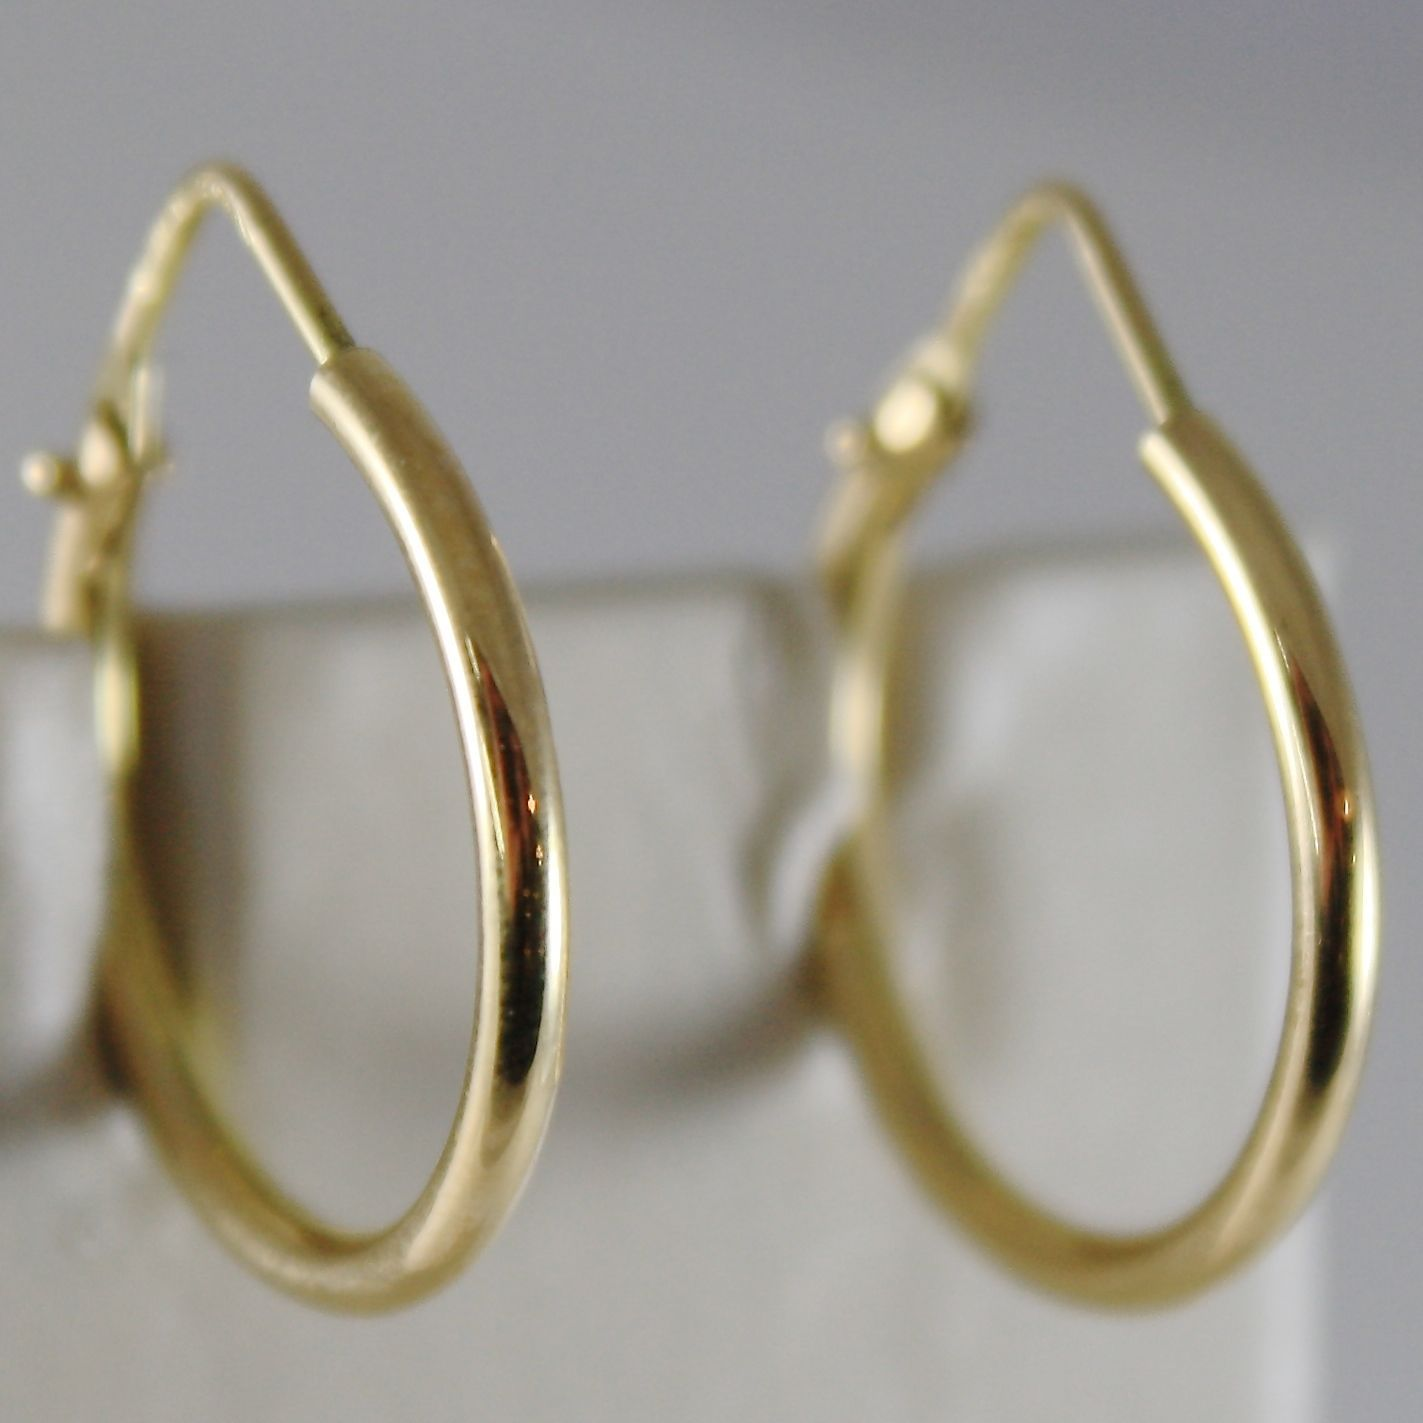 18K YELLOW GOLD EARRINGS LITTLE CIRCLE HOOP 19 MM 0.75 IN DIAMETER MADE IN ITALY